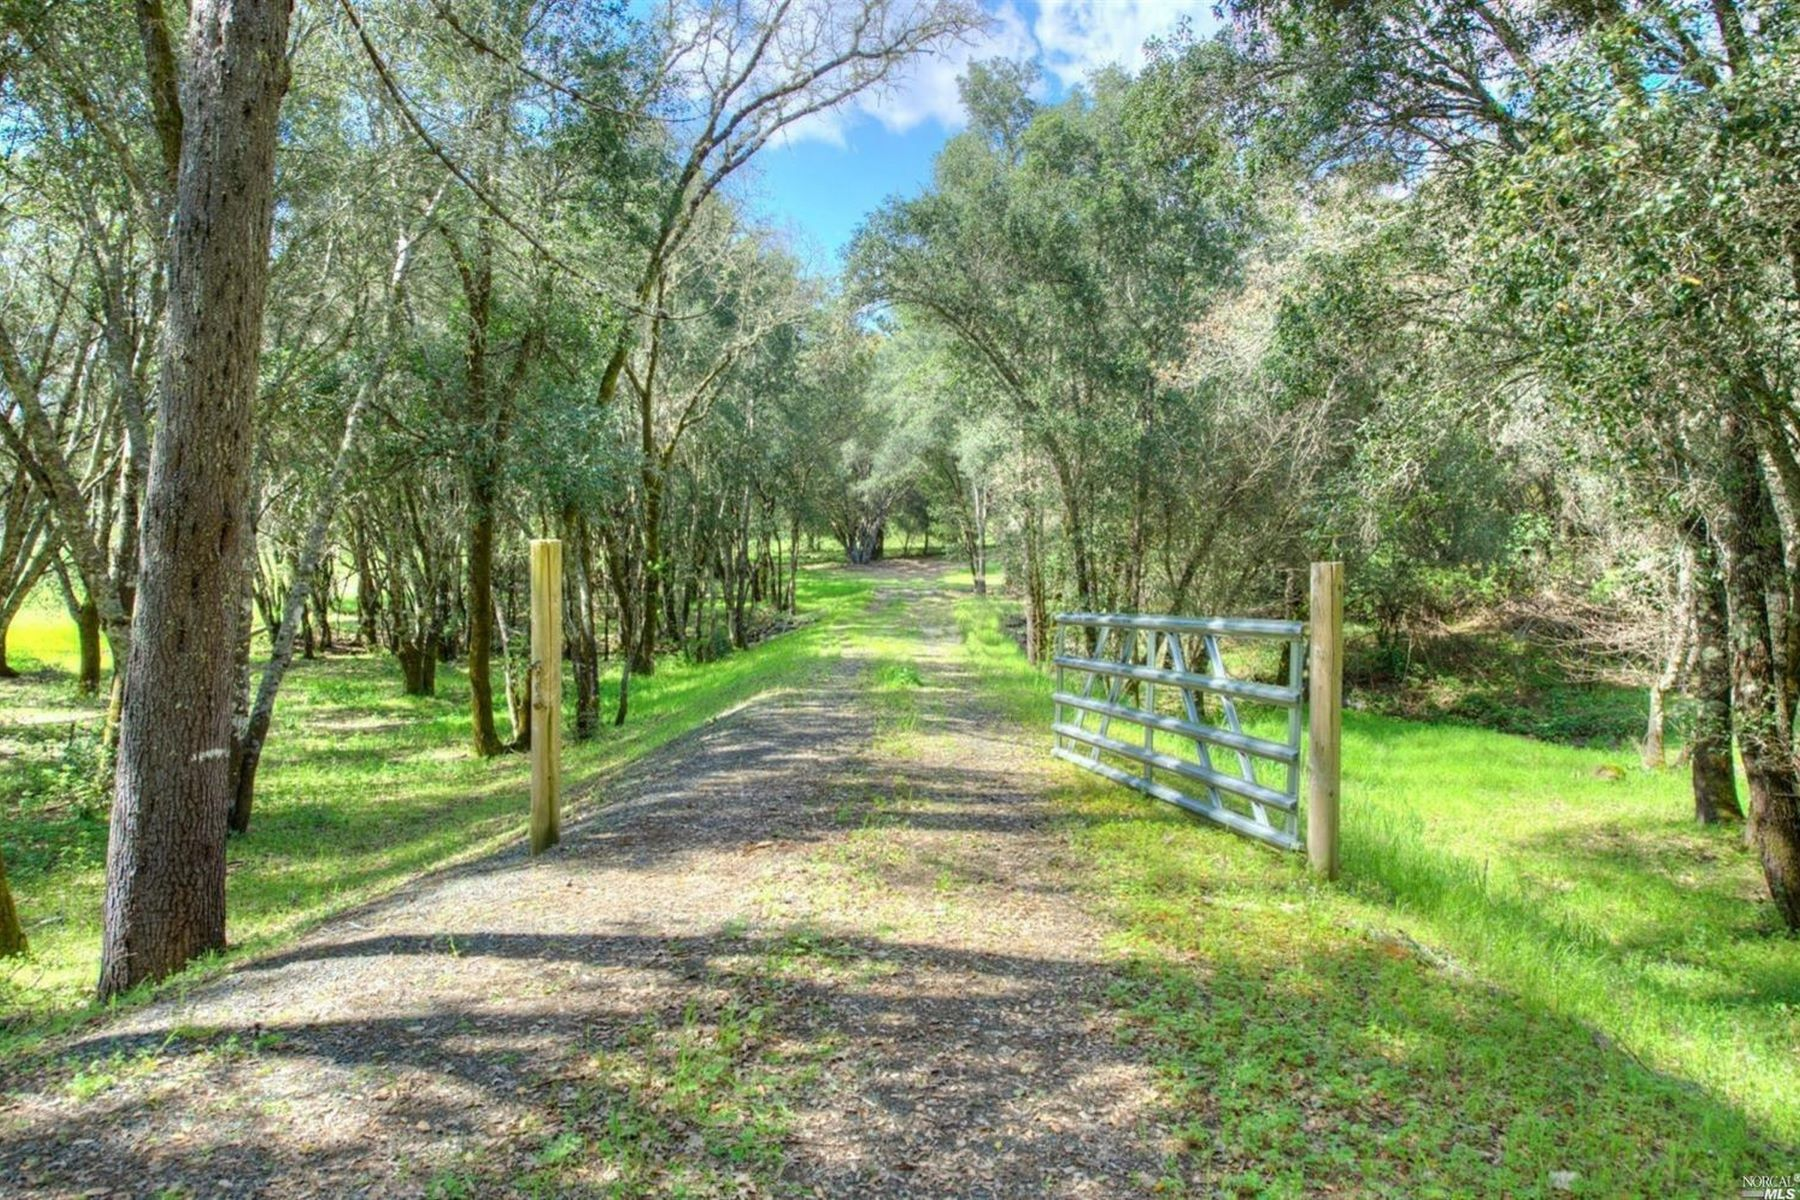 Land for Sale at 15 Acres on Franz Valley School Road 8535 Franz Valley School Road Calistoga, California 94515 United States